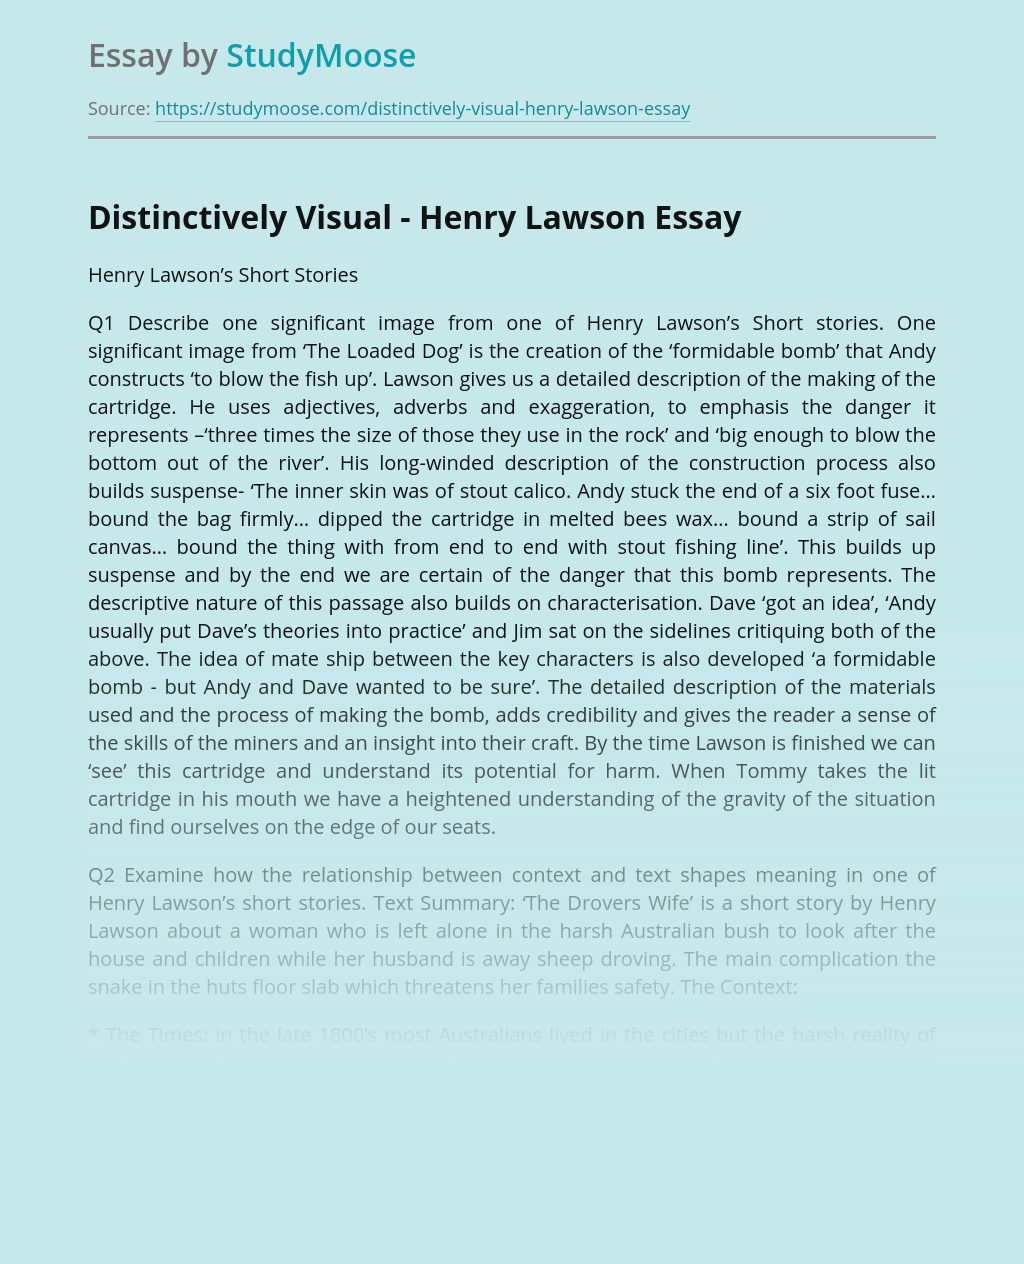 Distinctively Visual - Henry Lawson